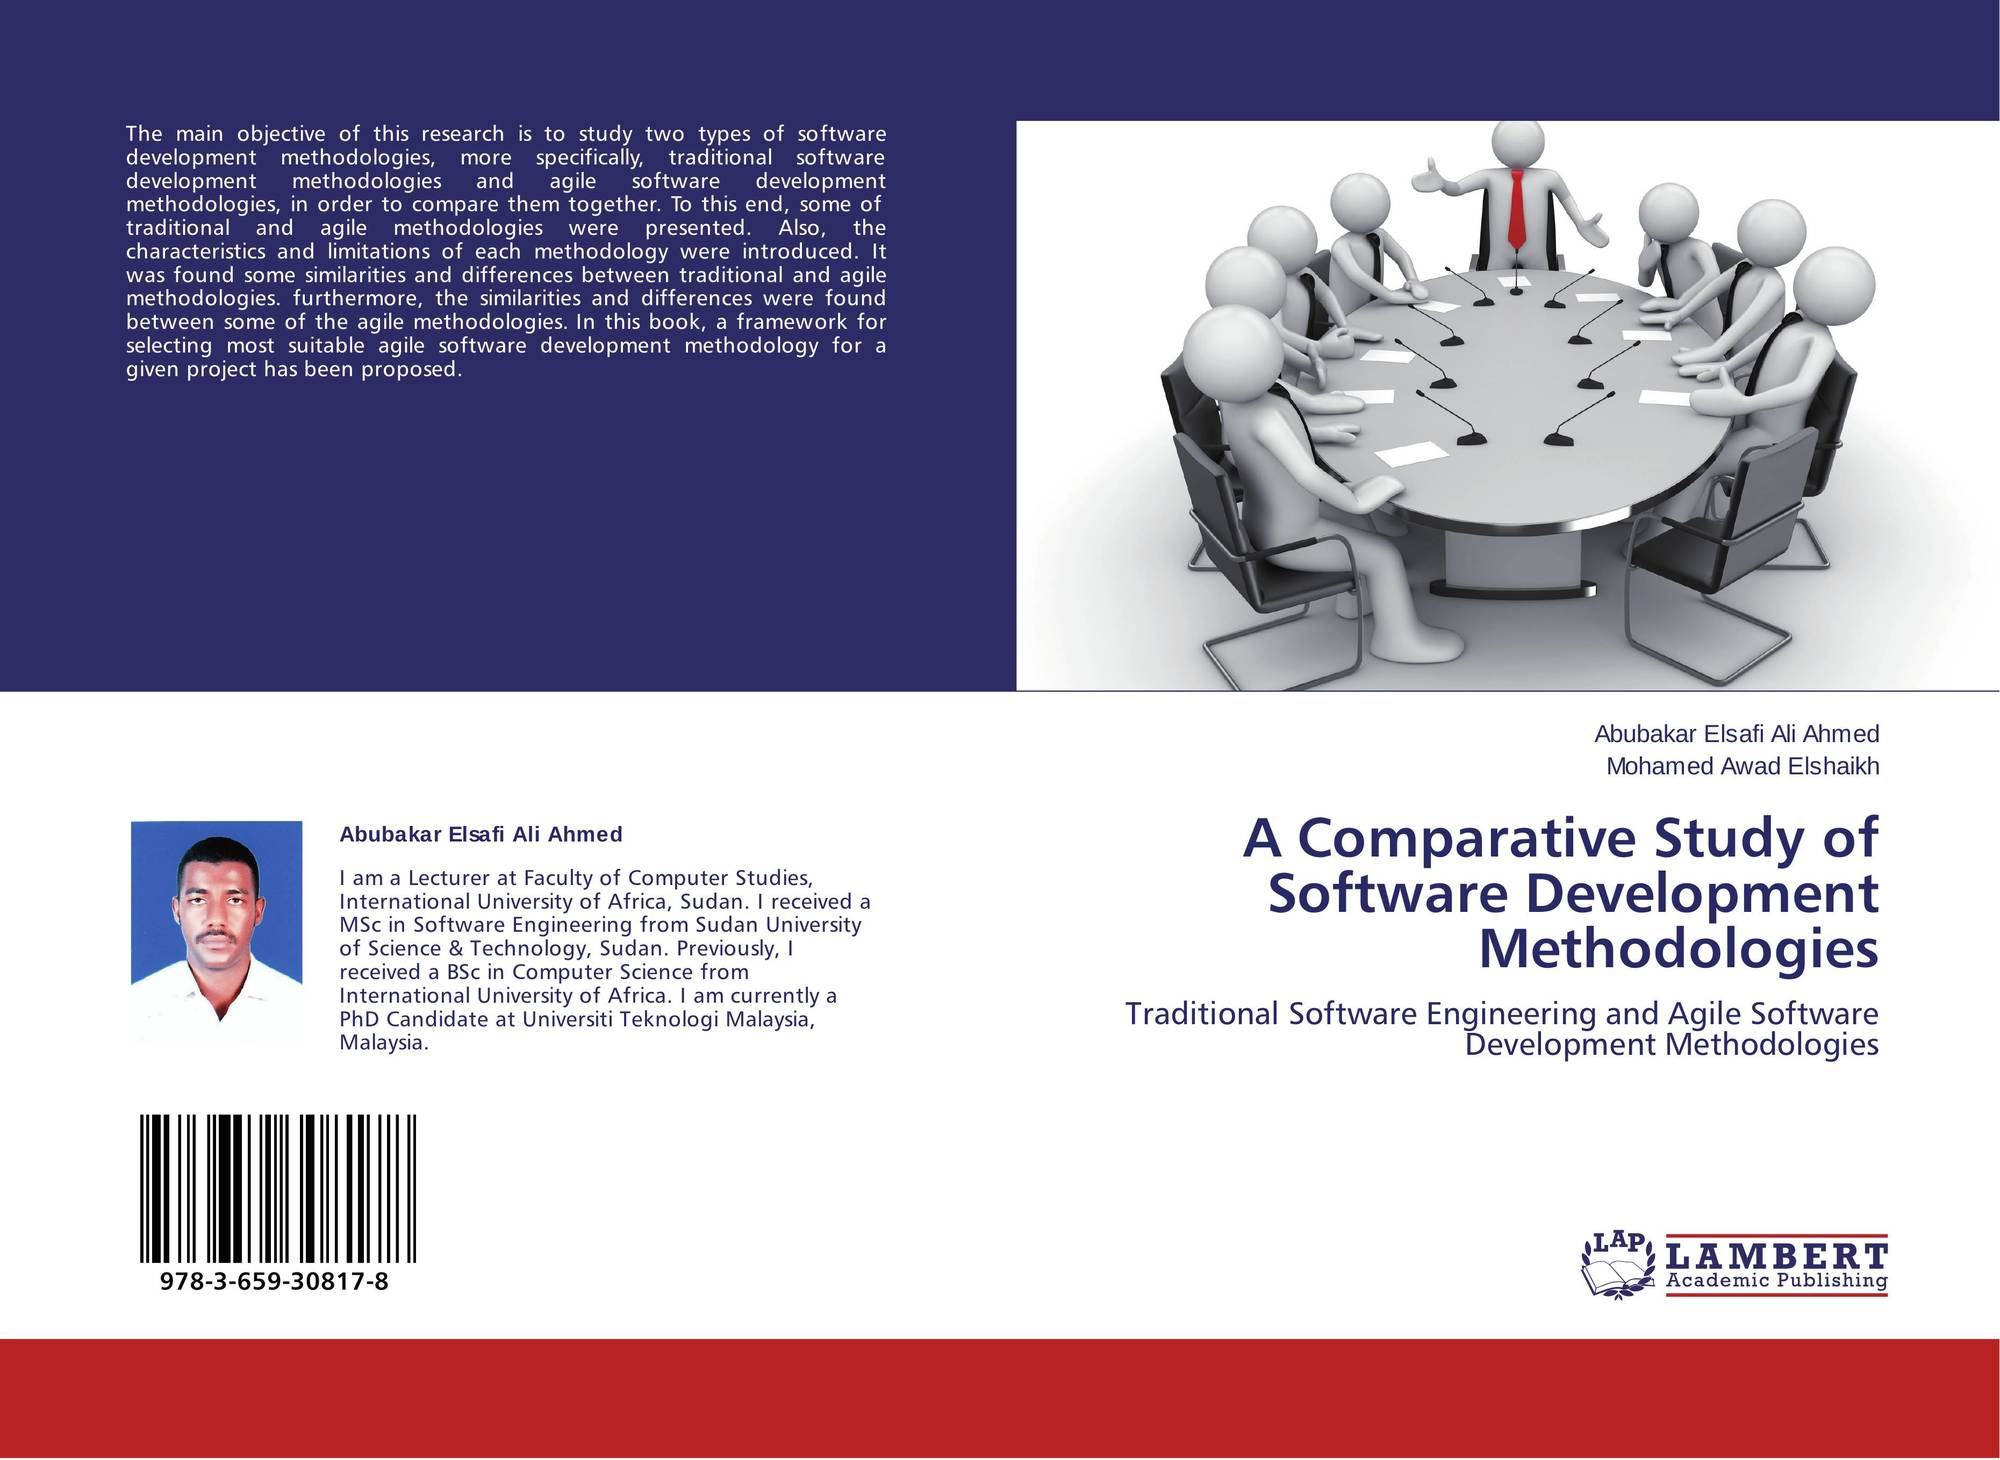 comparative analysis of modernization A comparative analysis of traditional software engineering and agile software development ashley aitken school of information systems curtin university – perth, australia.